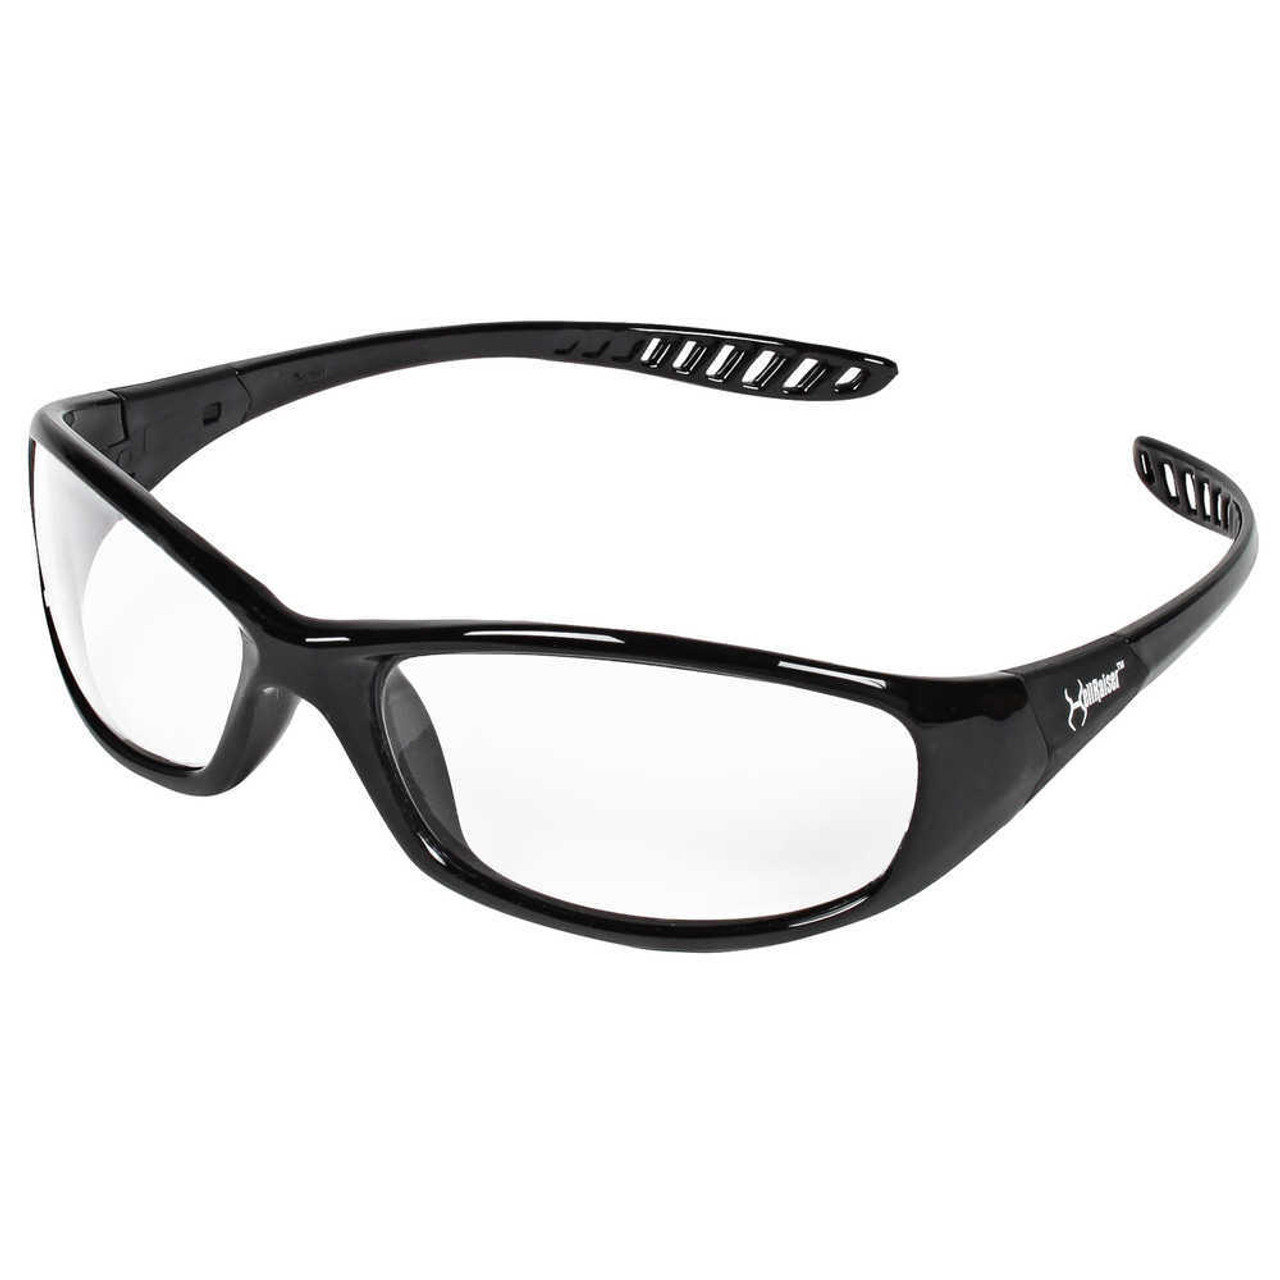 Eagle Flash Work Safety Glasses with Polycarbonate Lenses for Gas Welding Goggles